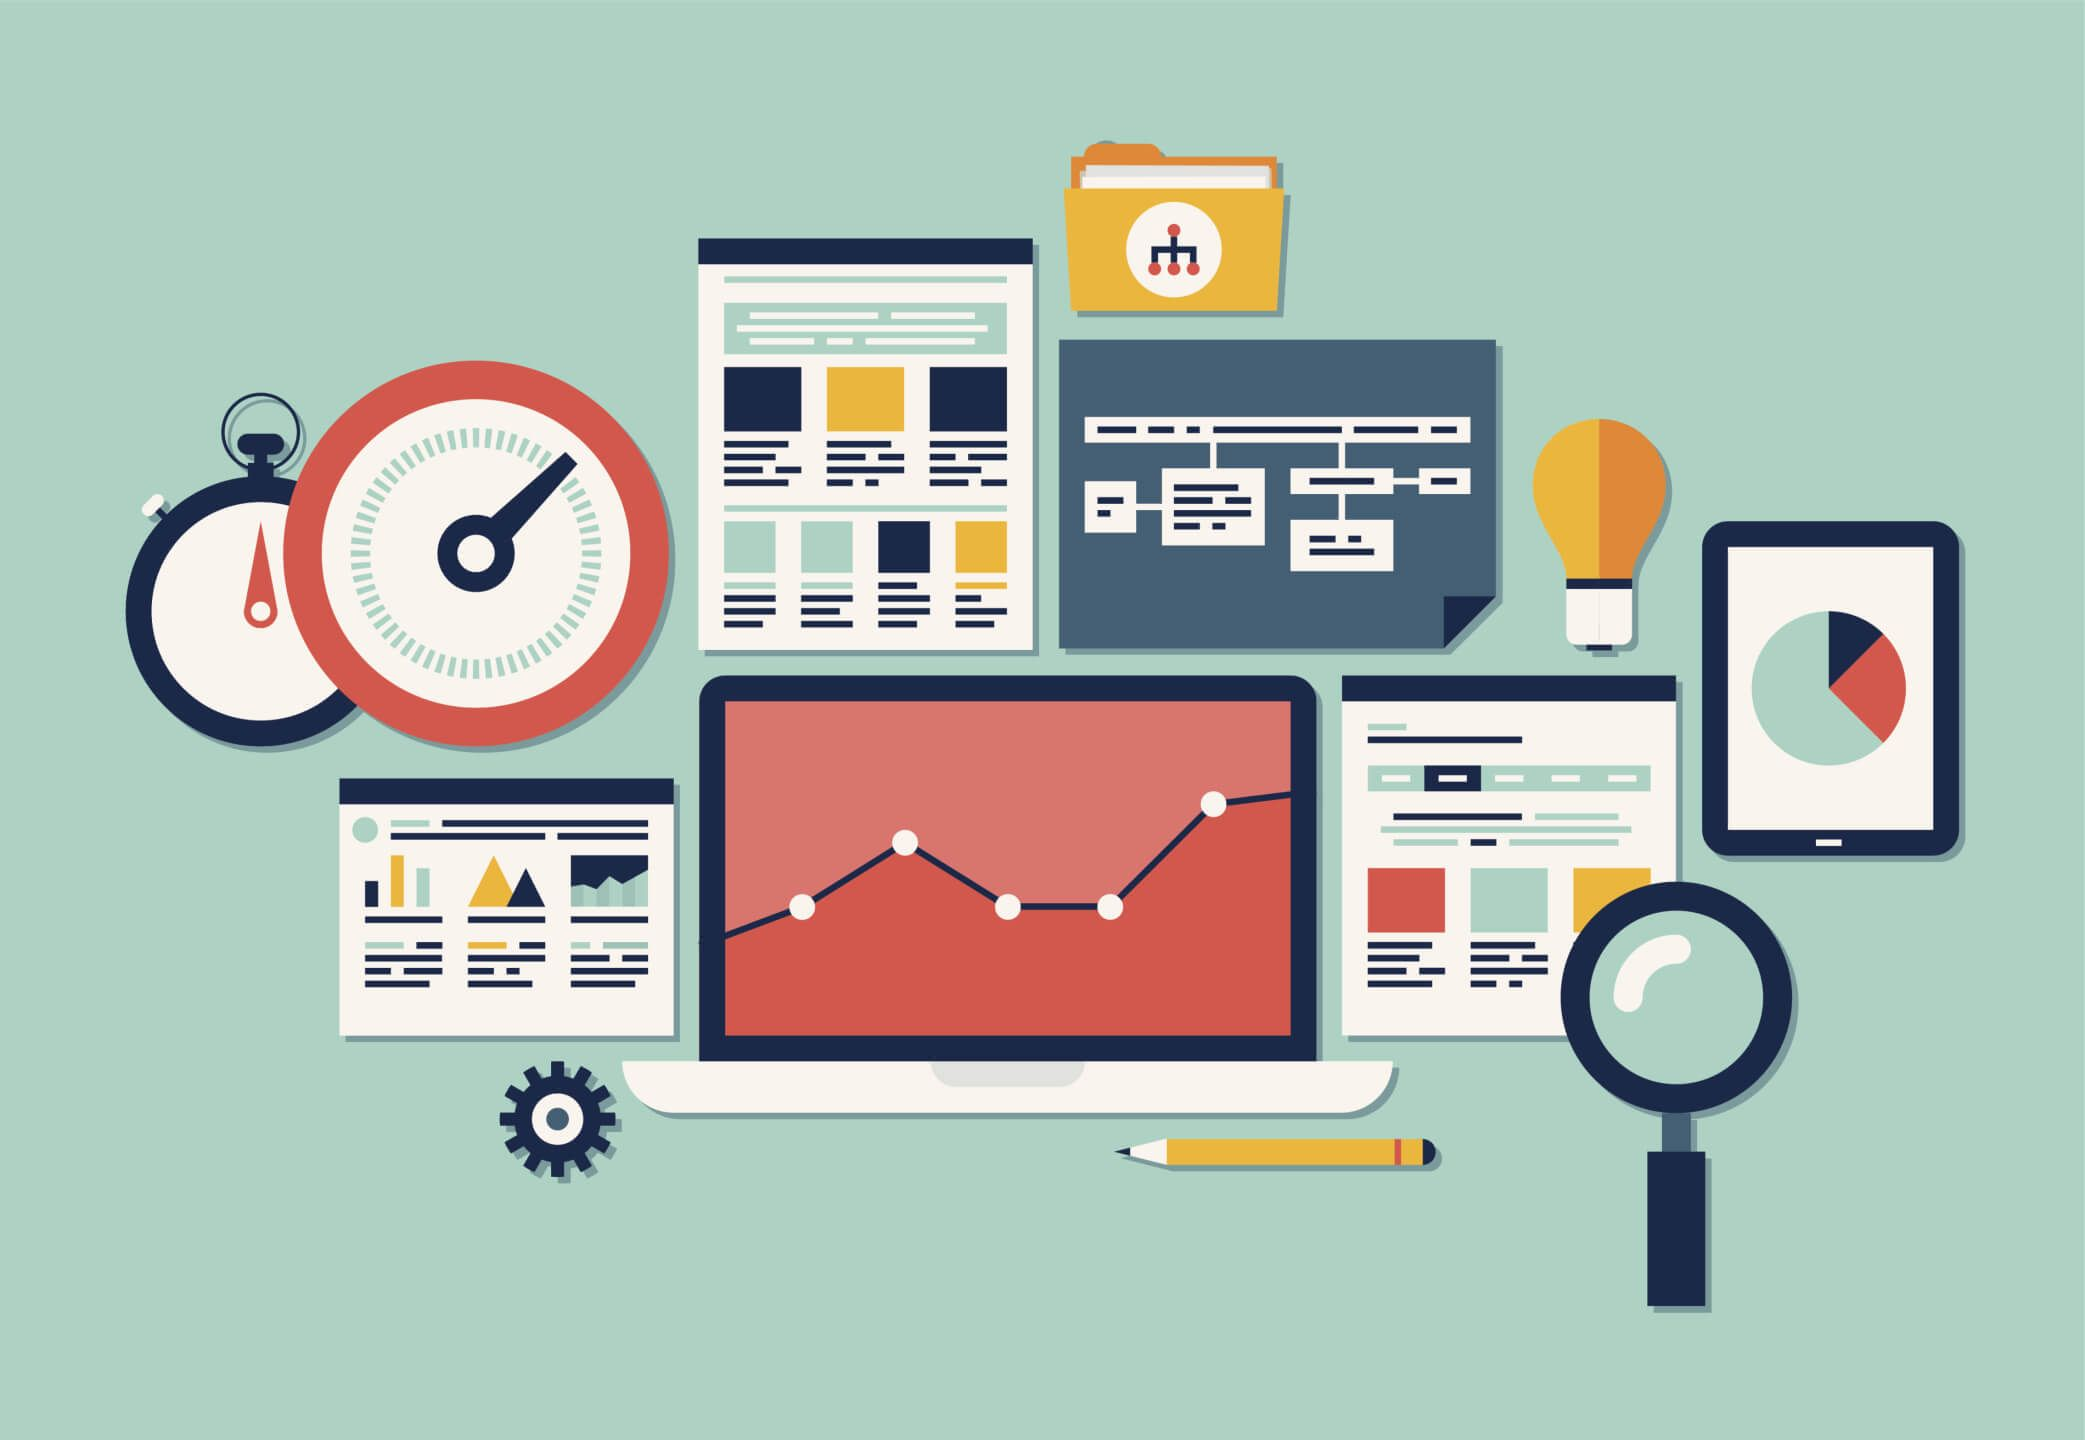 Website SEO and analytics